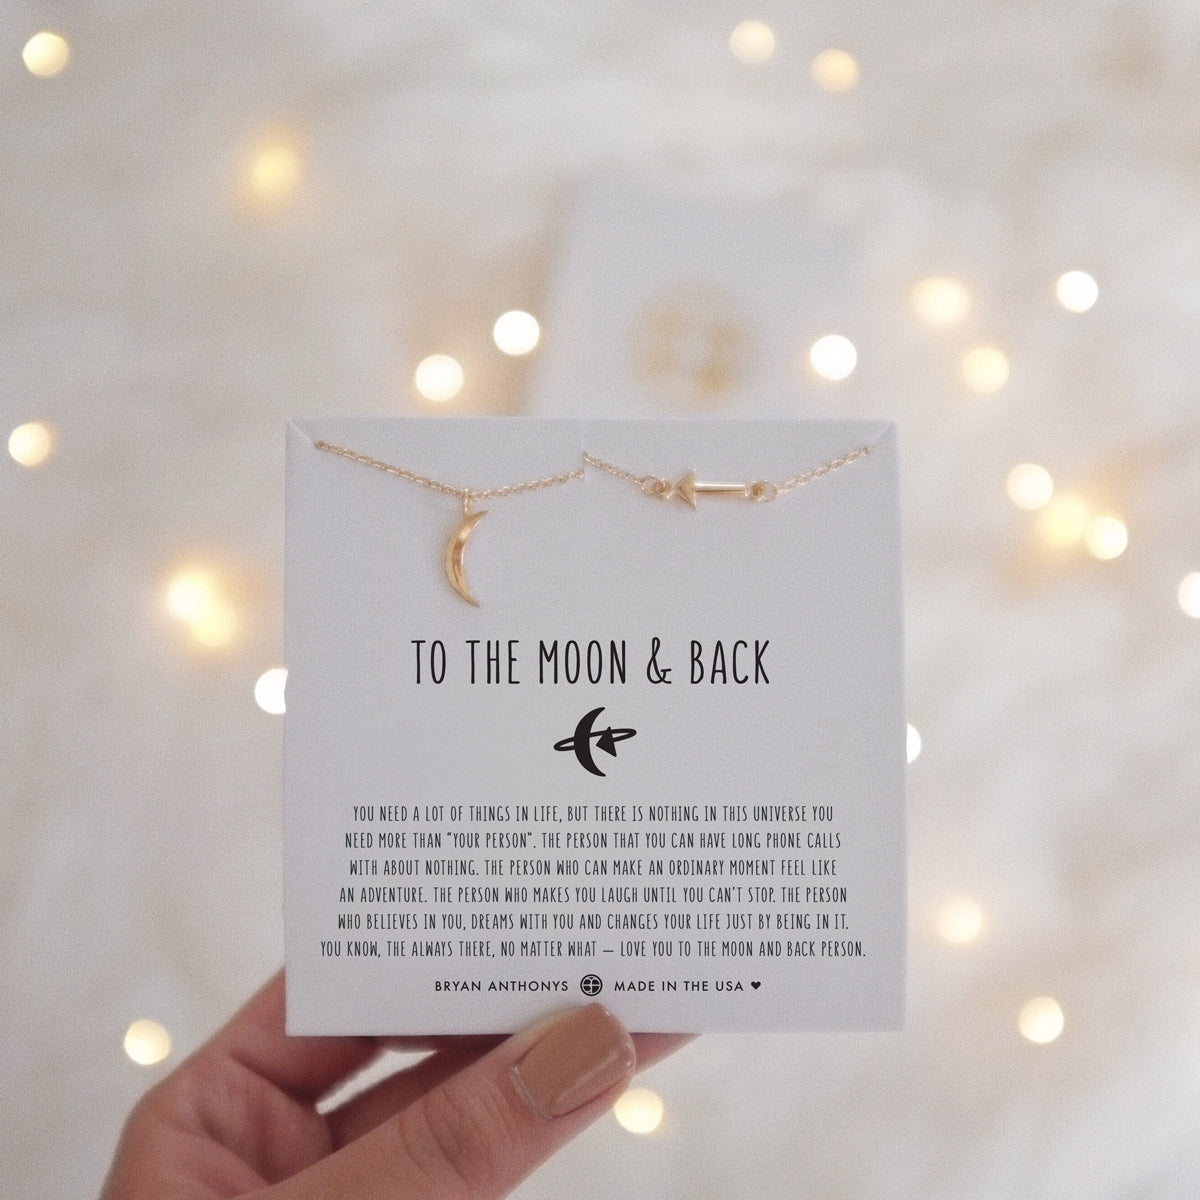 78856362f5d0 Bryan Anthonys dainty to the moon and back necklace set 14k gold on card  holding card